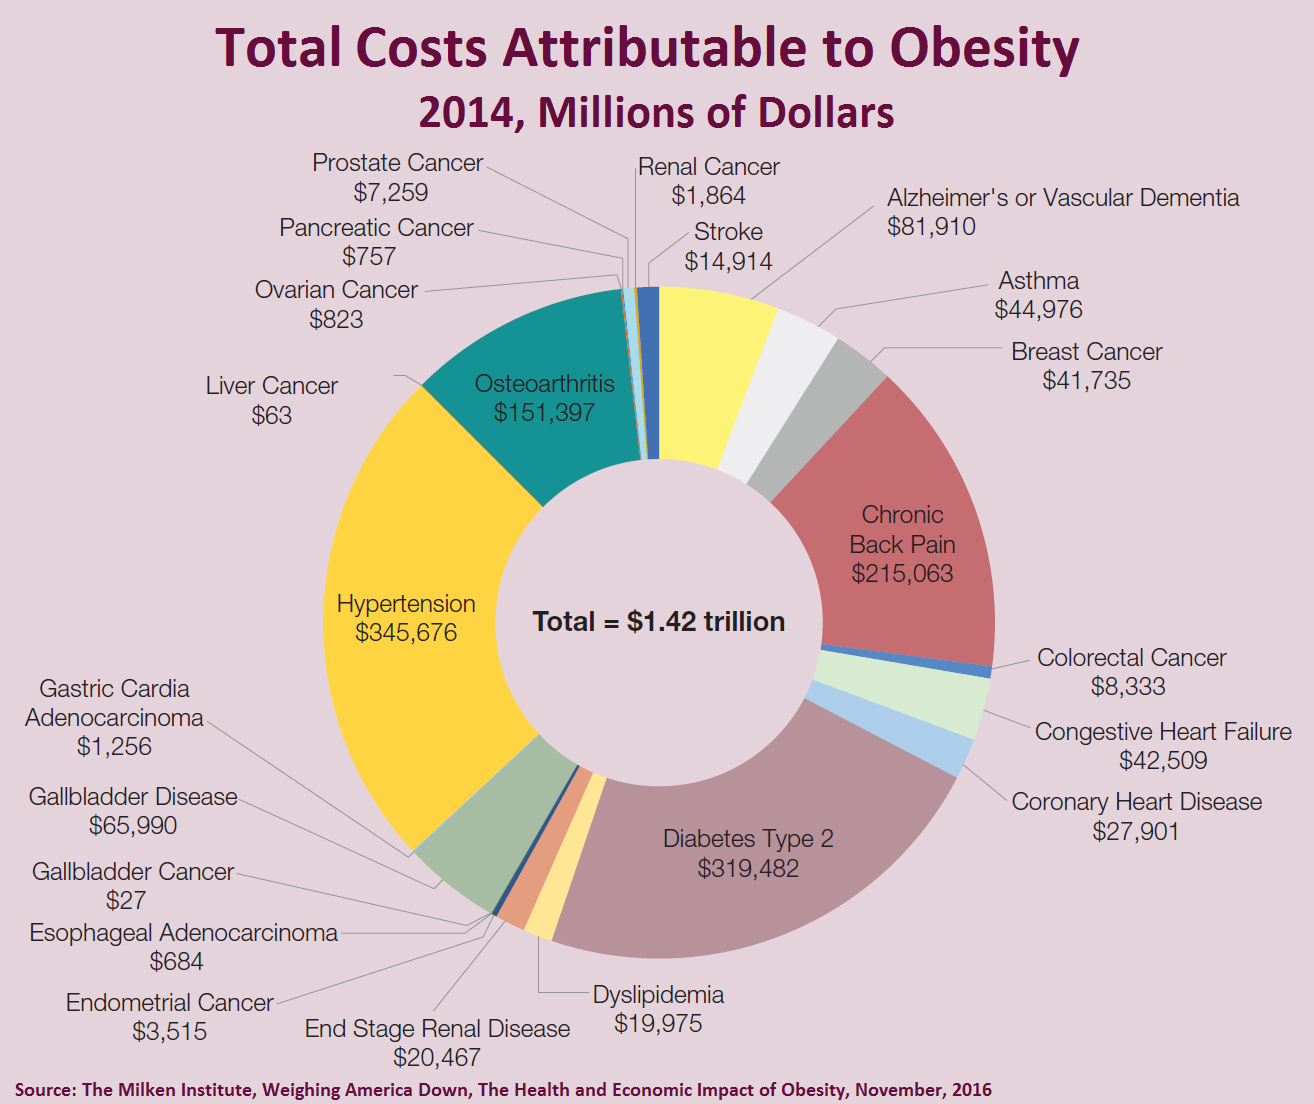 Total Costs Attributable to Obesity, 2014